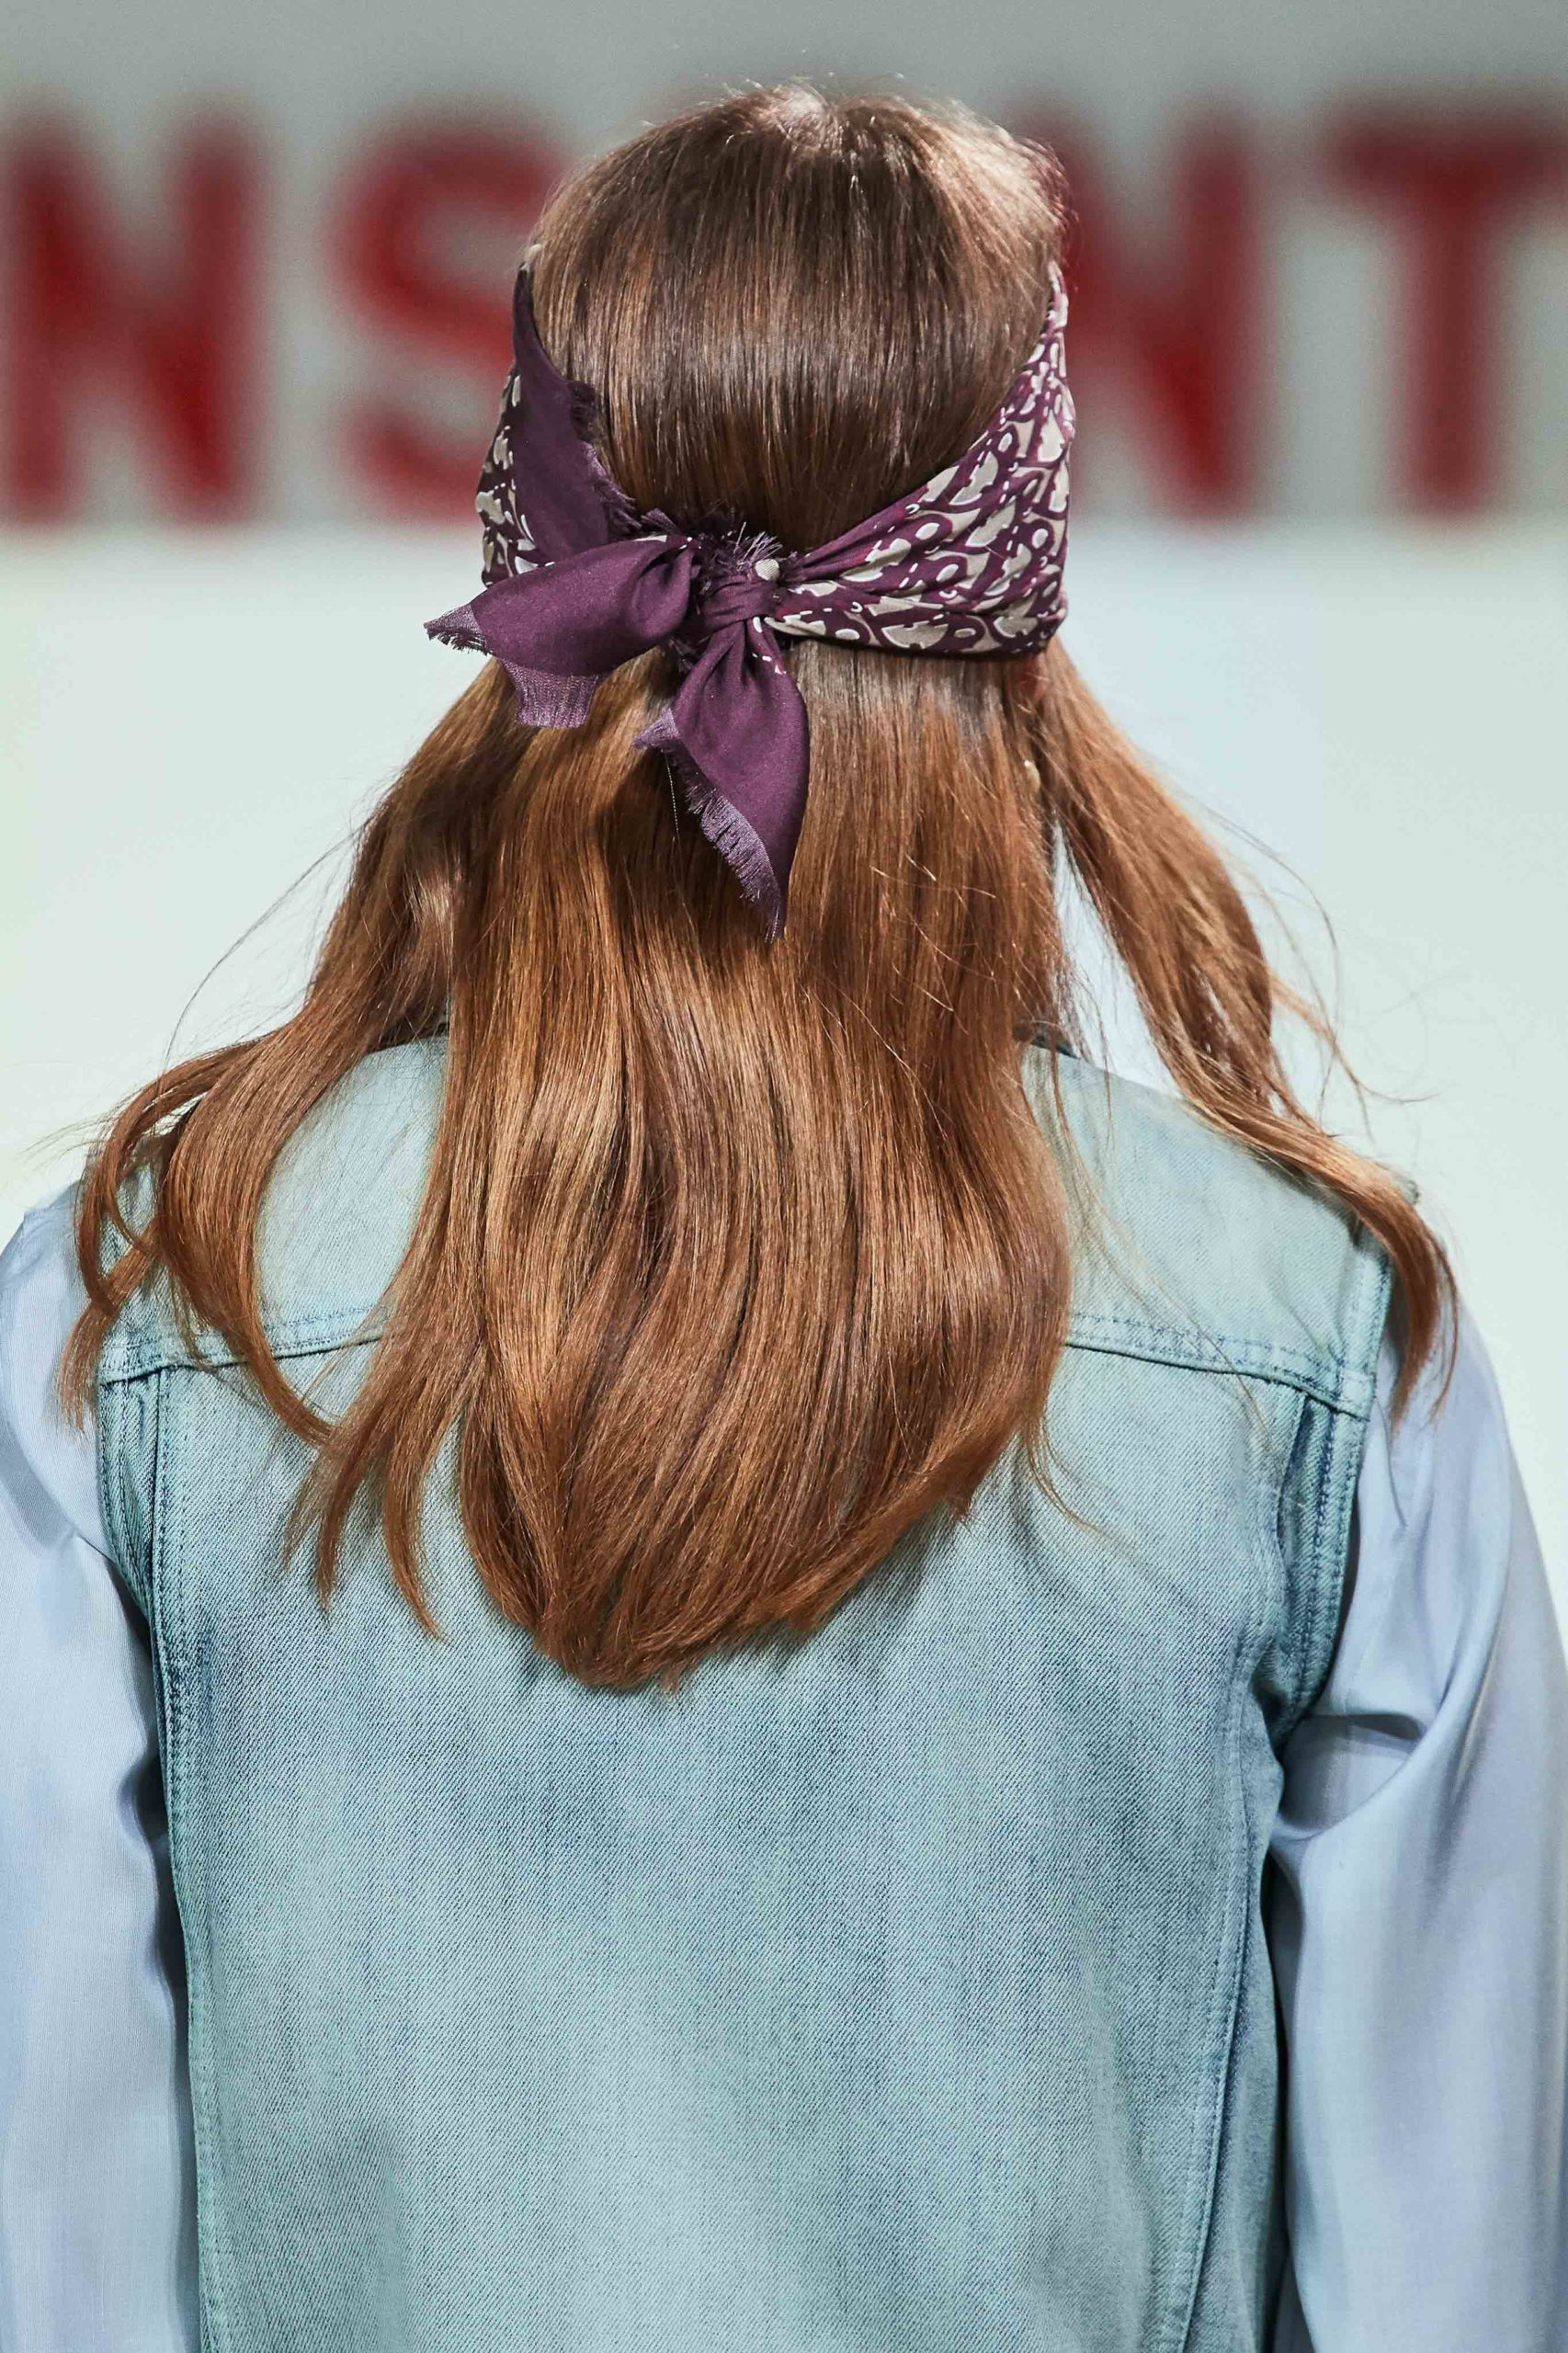 Dior Fall Winter 2020 trends runway coverage Ready To Wear Vogue details scarf 4